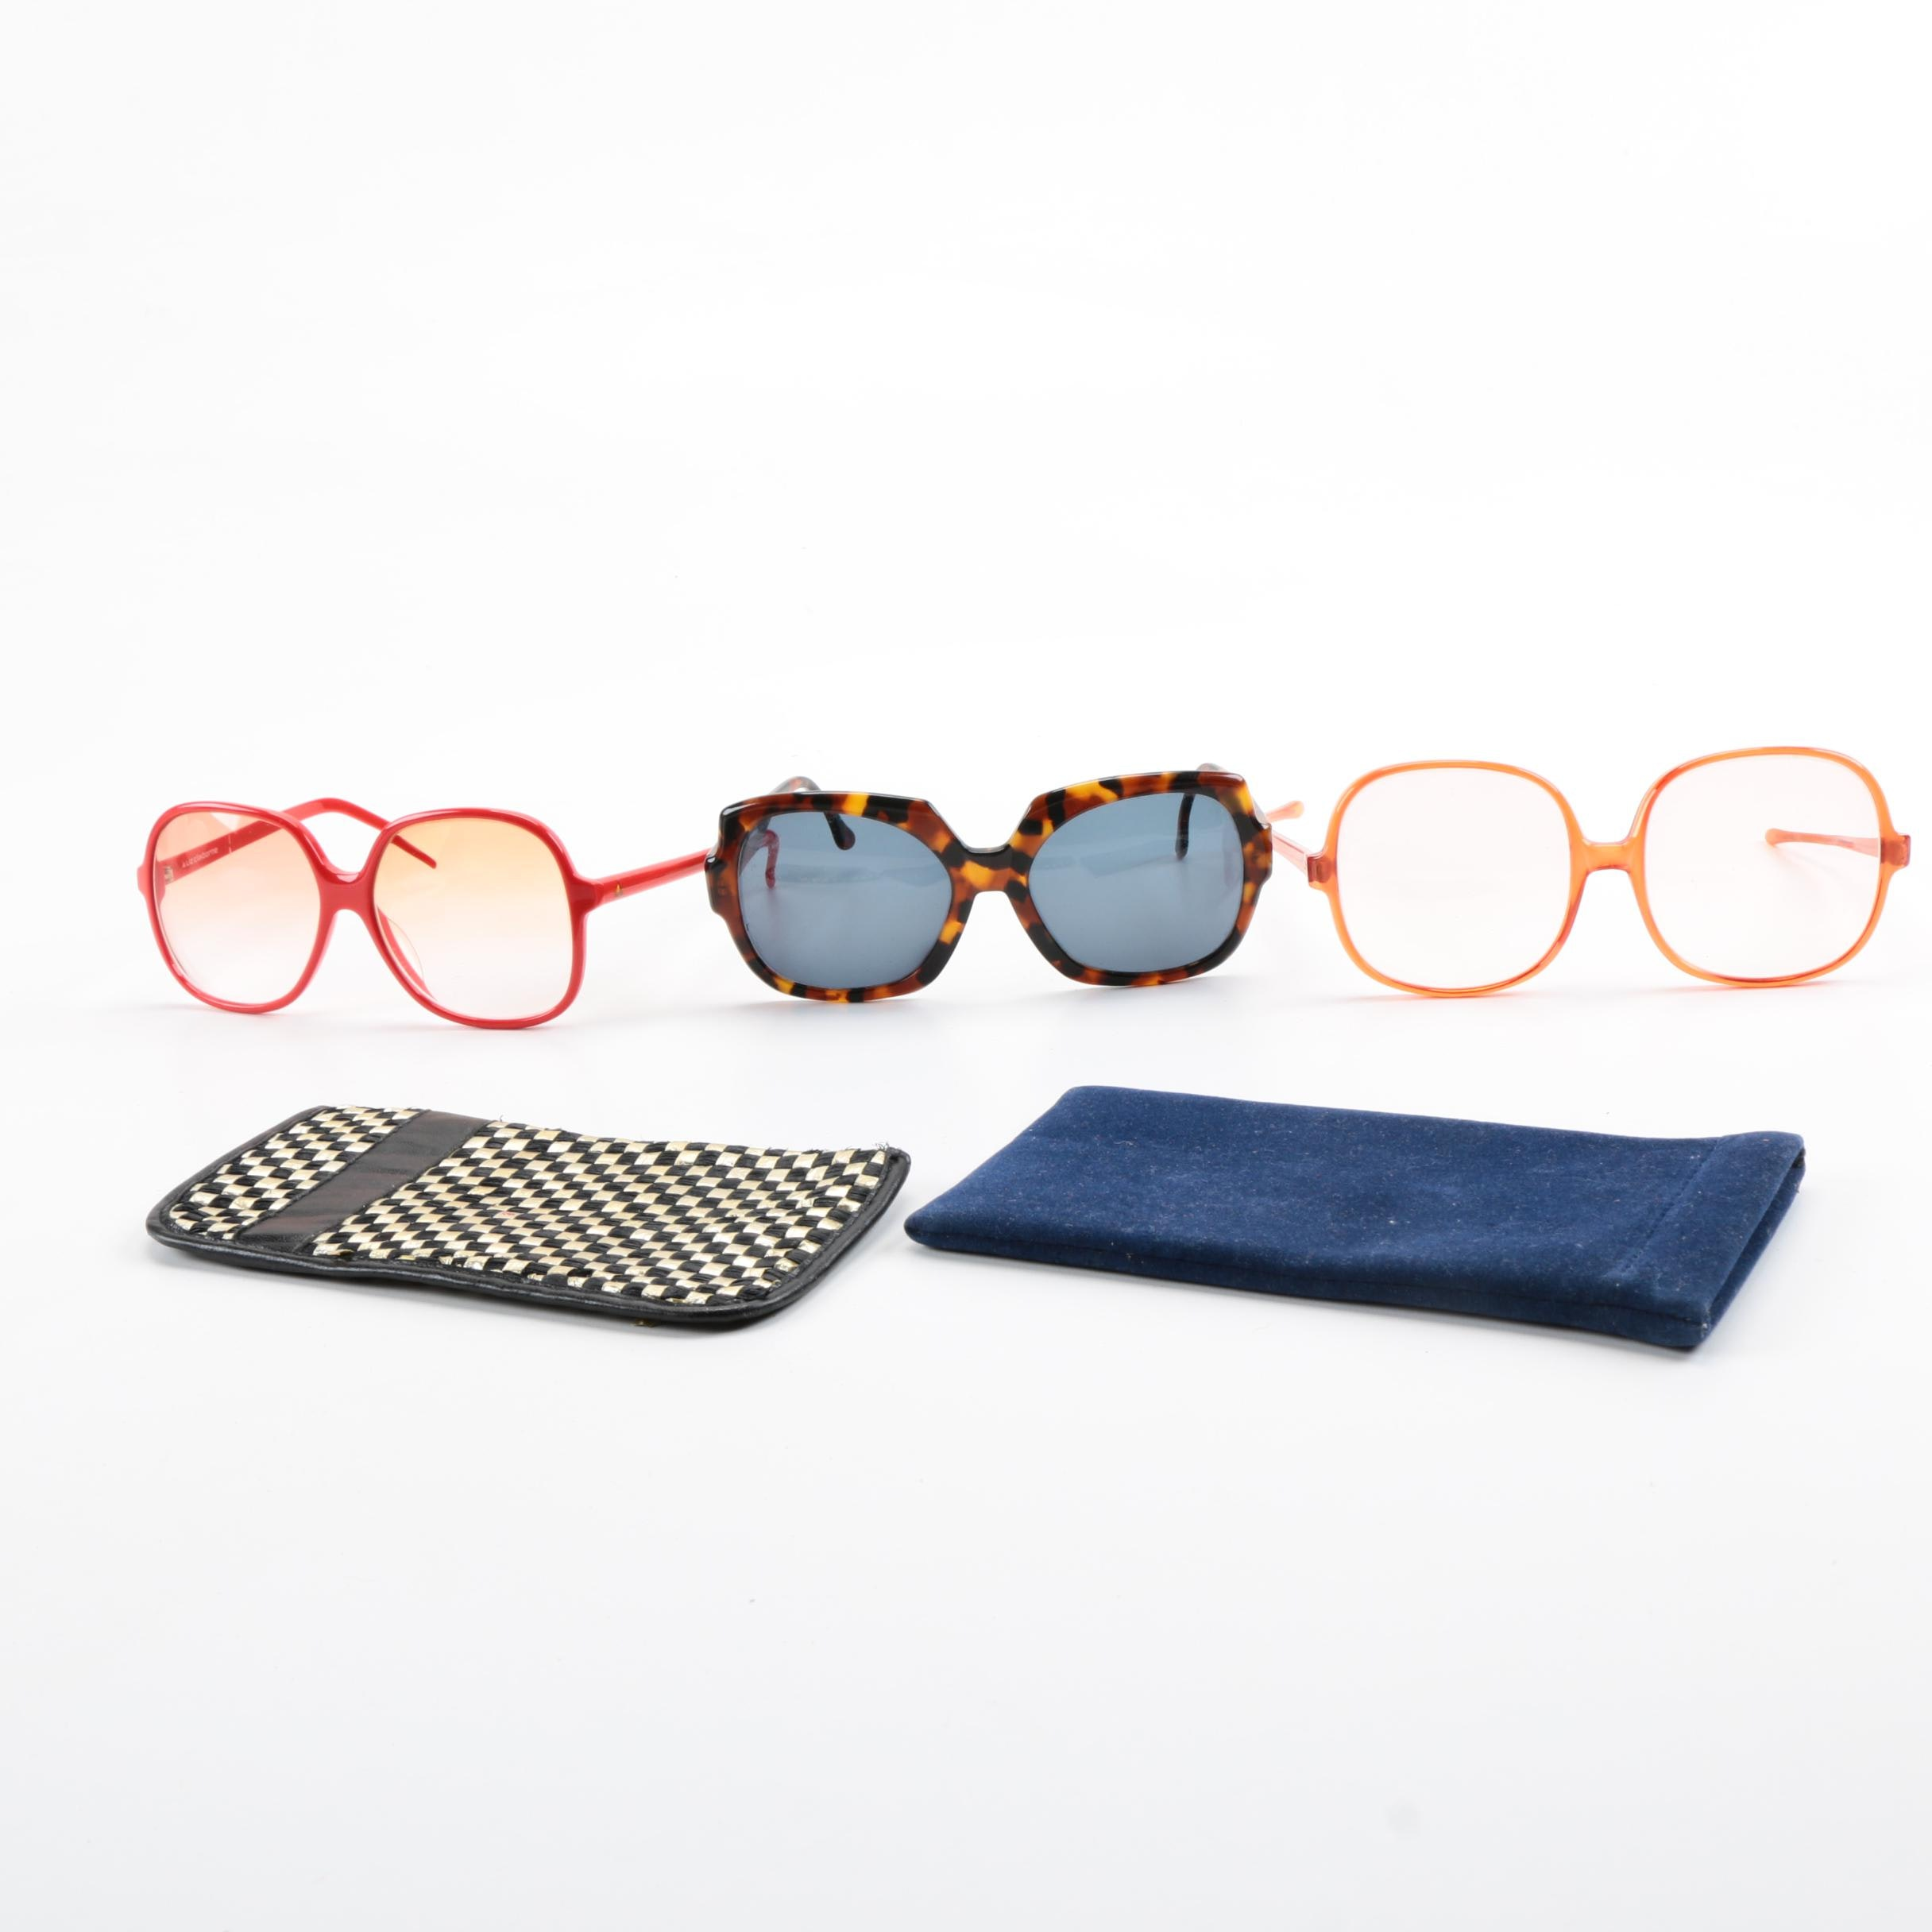 Women's Vintage Eyewear and Cases